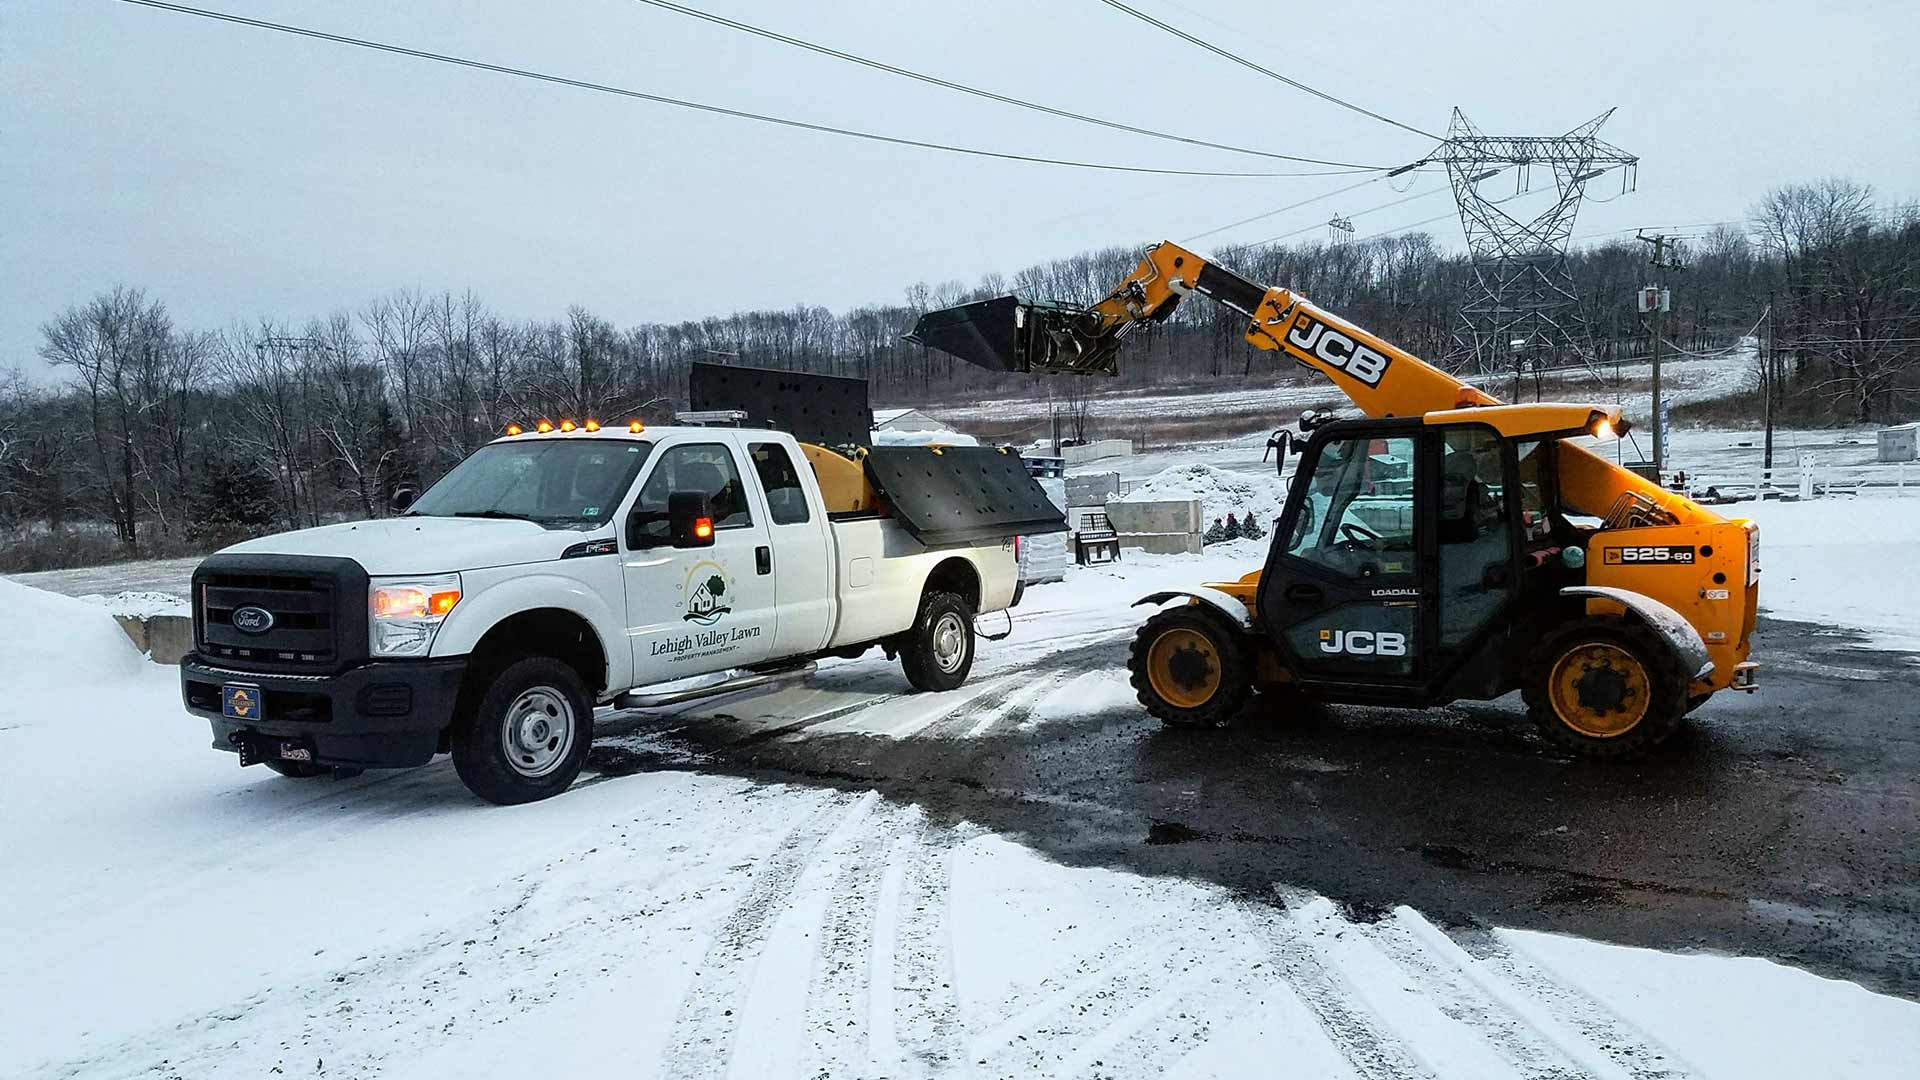 Commercial snow removal services and work truck in Emmaus, PA.